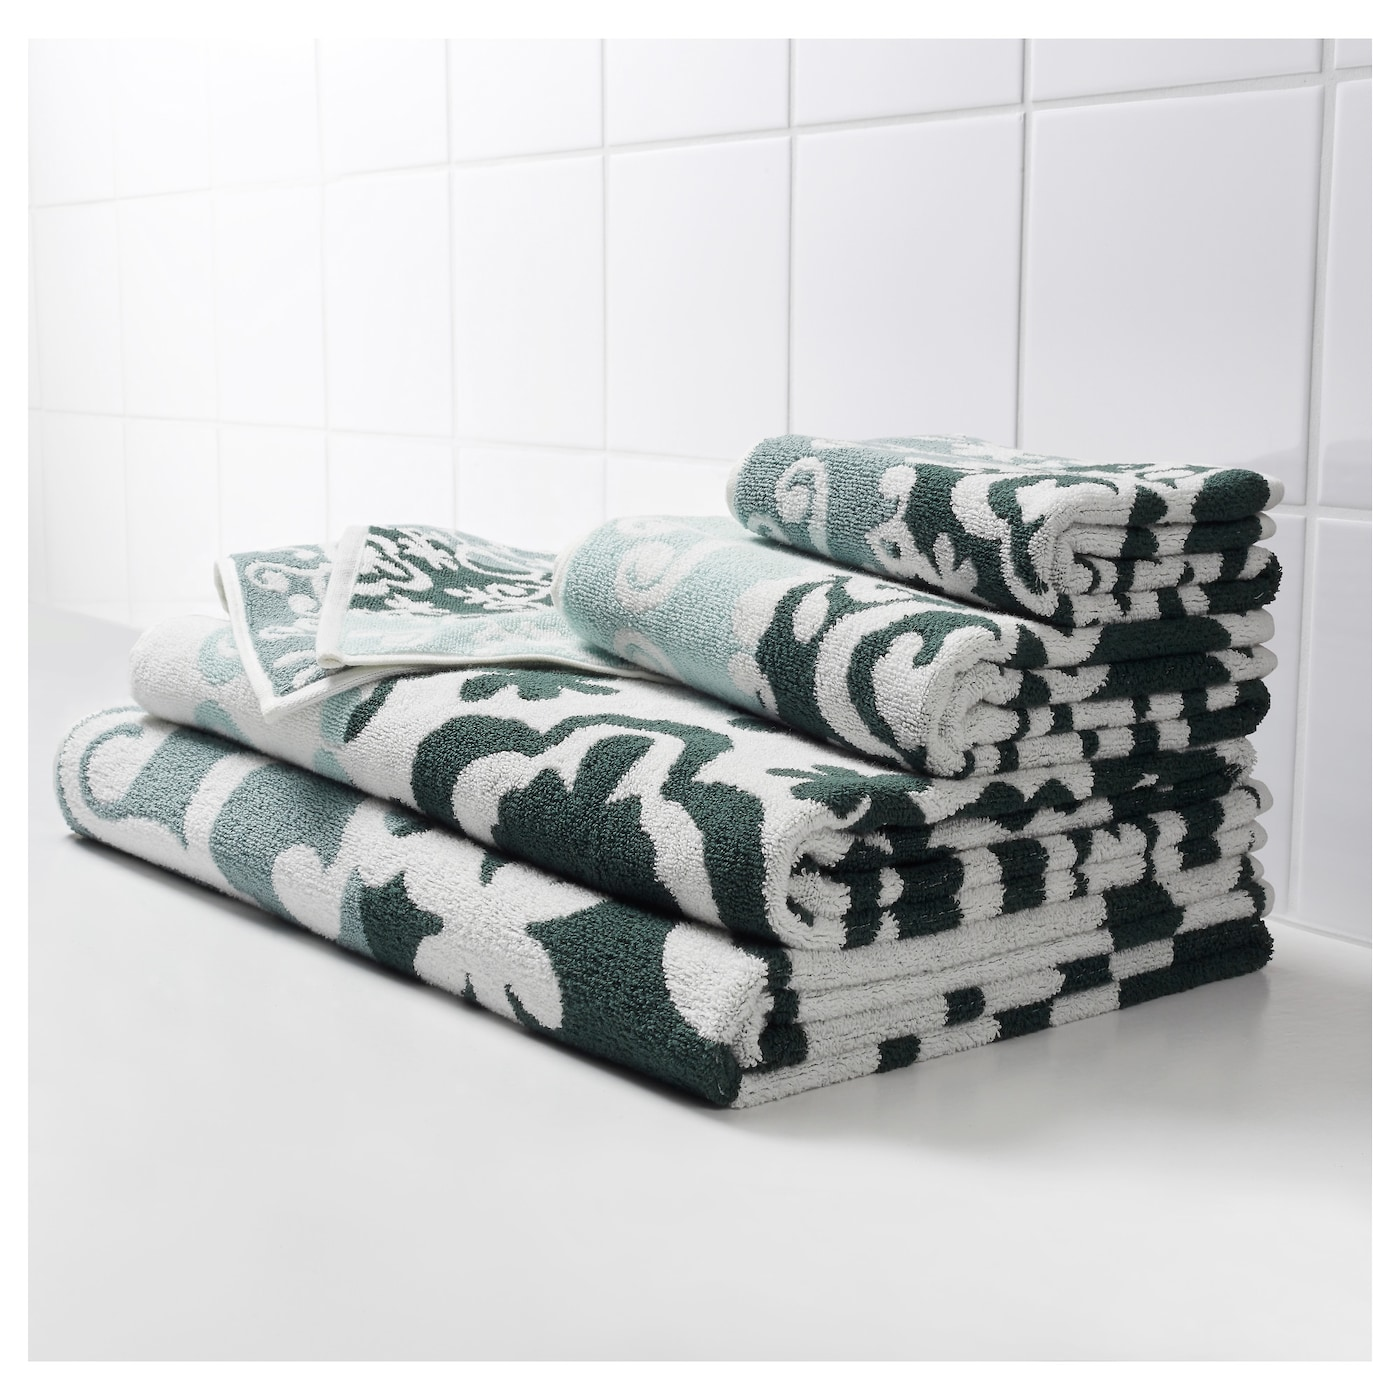 IKEA BLÄDJAN hand towel The long, fine fibres of combed cotton create a soft and durable towel.